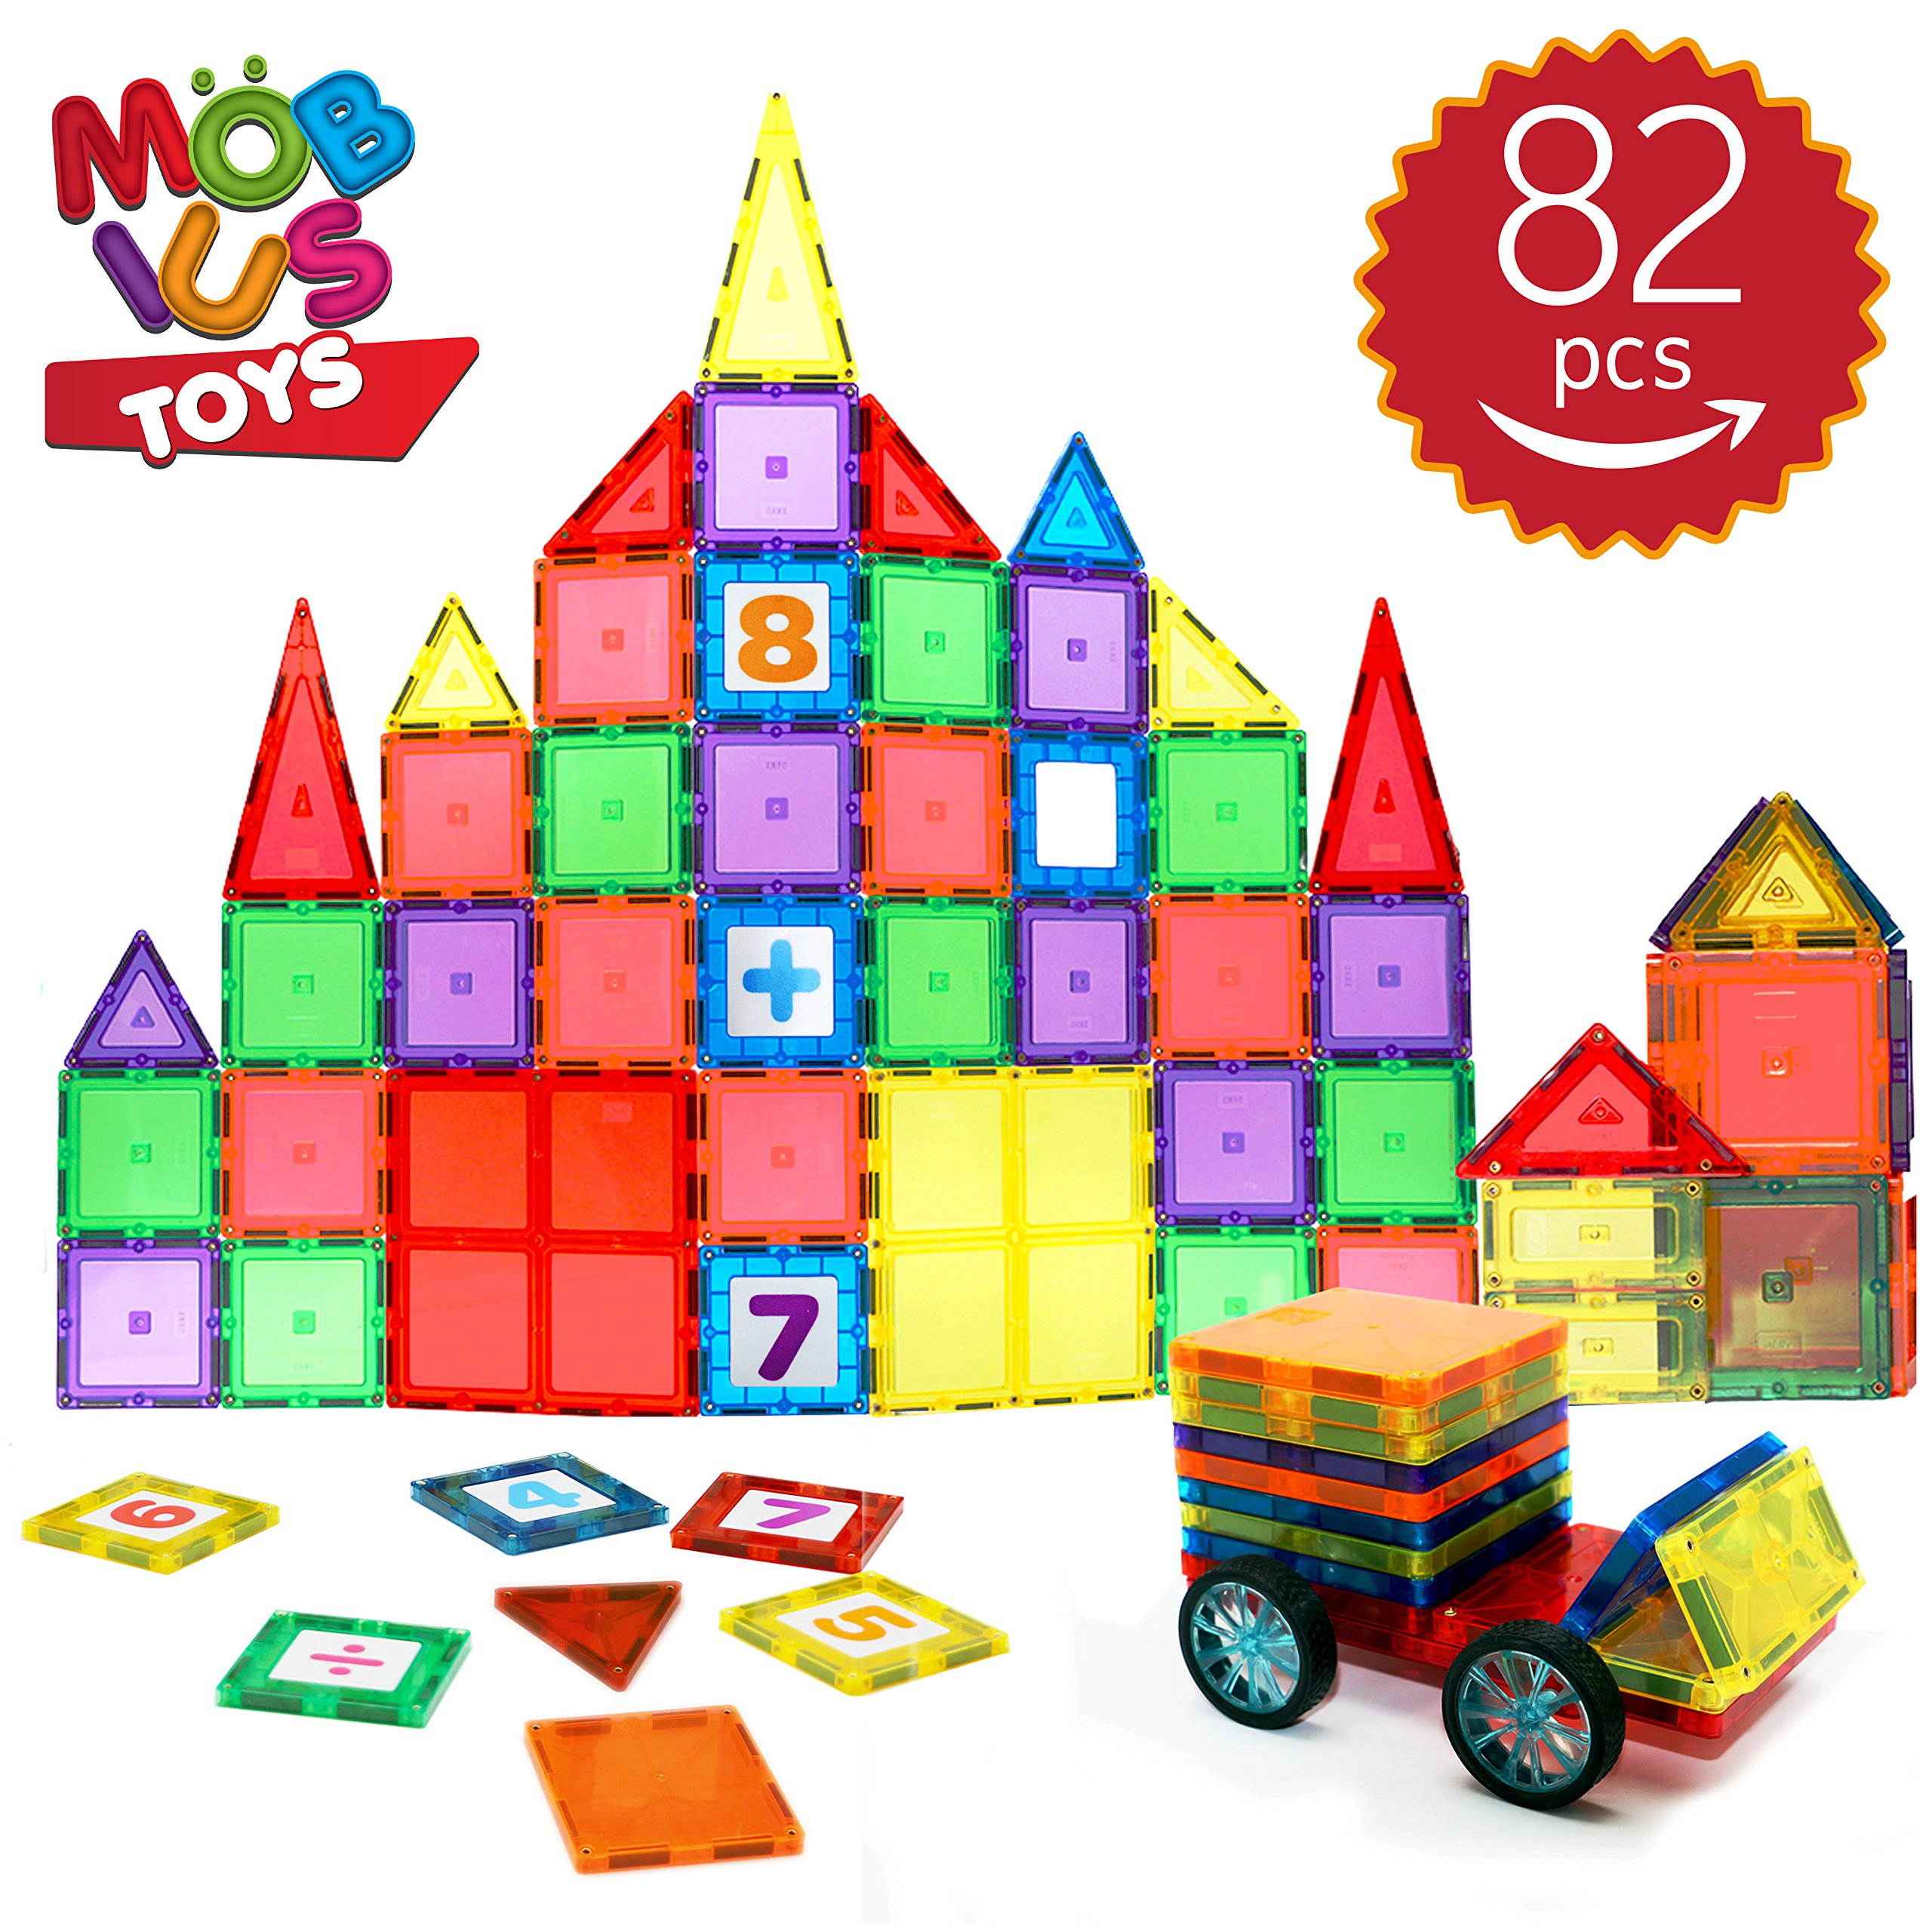 Magnetic Blocks 82 Piece Set - Magnetic Tiles Kids Strong Metallic Rivets - 3D Various Magnetic Shapes That Build - Magnet Car-Wheels & Click-in Numbers Bonus, Plus Storage Bag